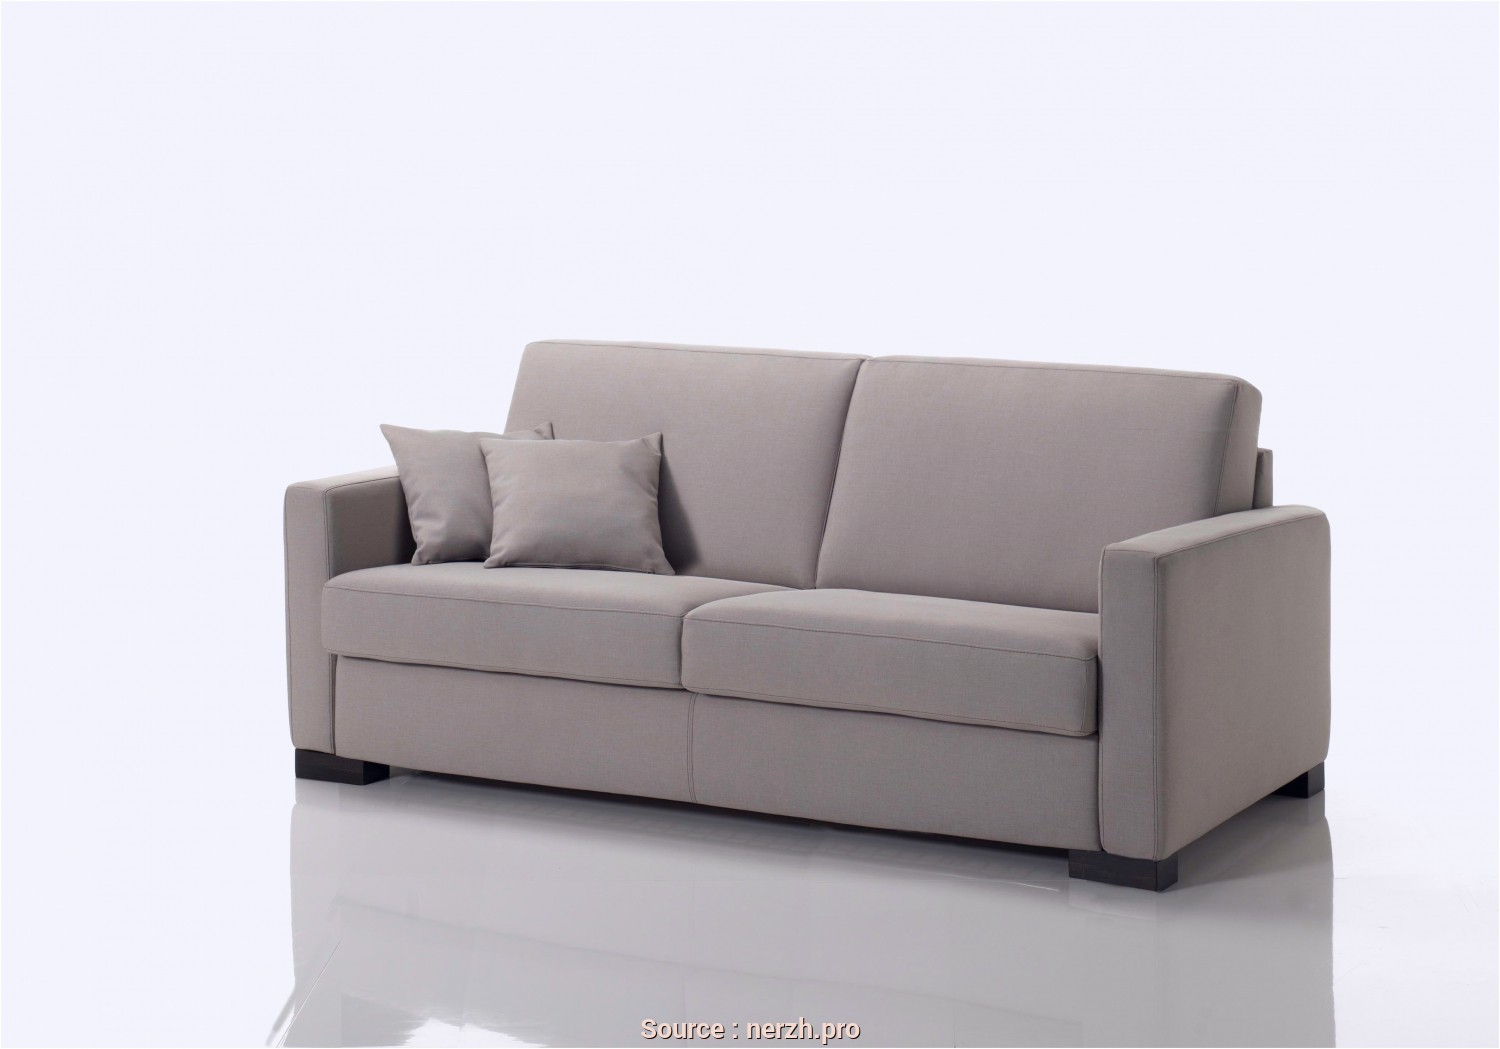 Incredibile 4 Divano Poltrone Sofa Guastalla